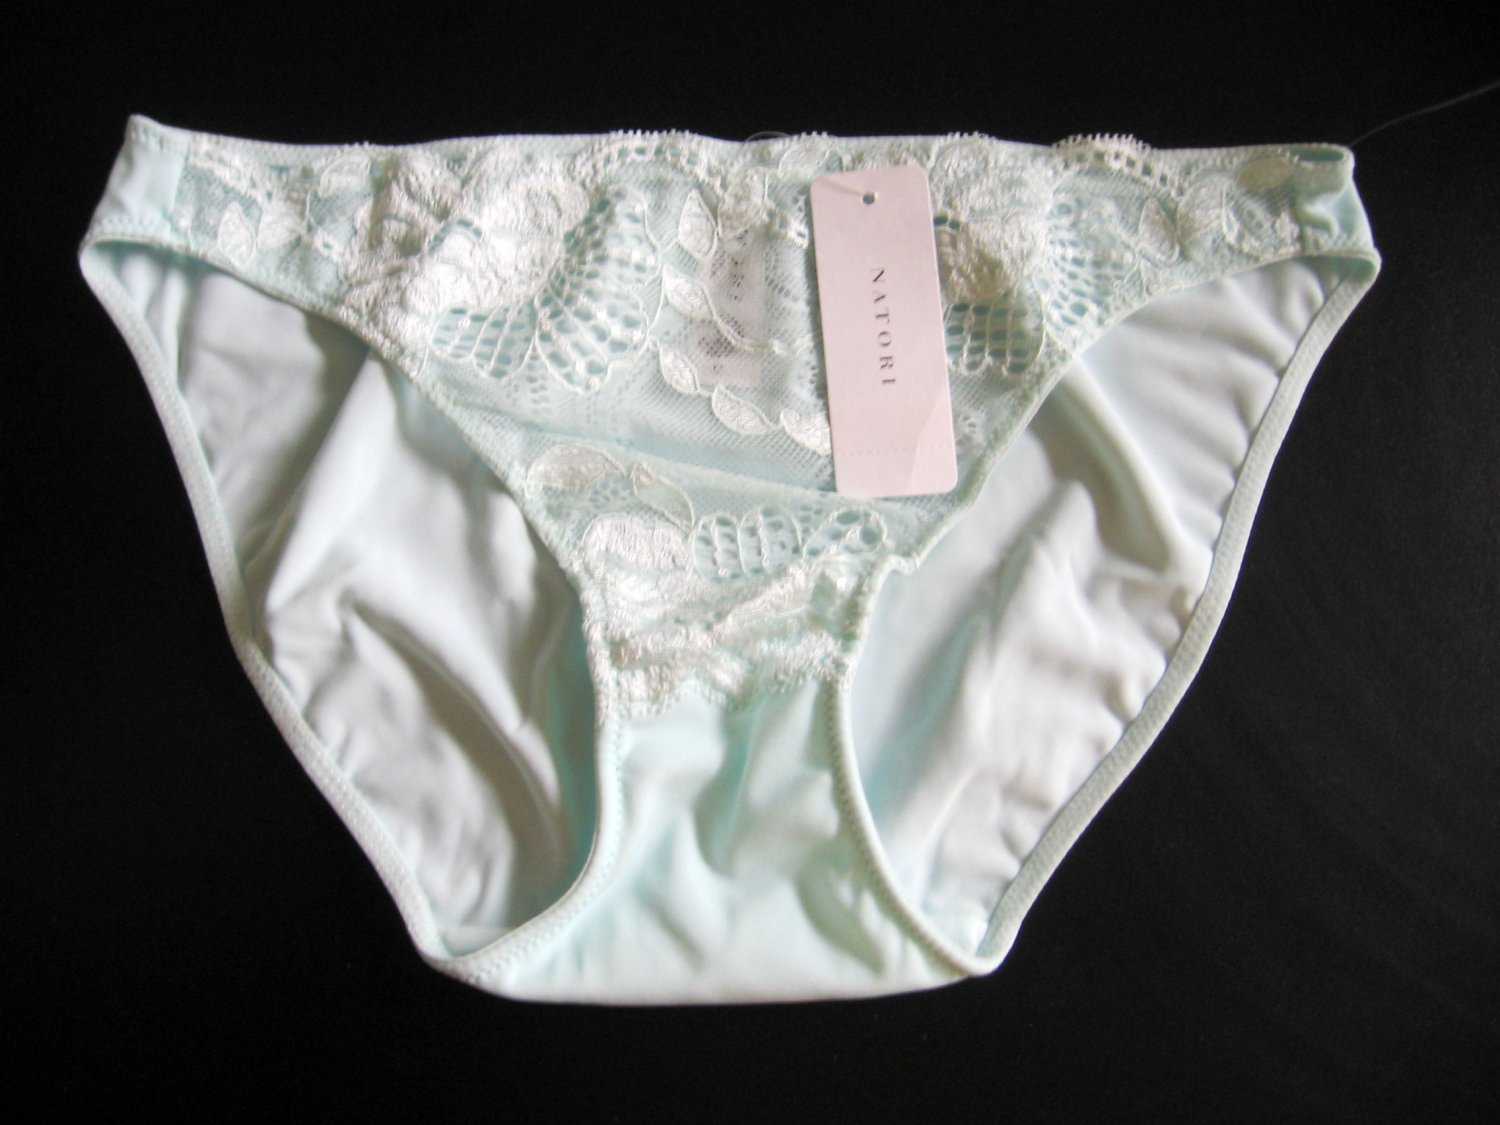 A469 Natori Underneath White Label Zen Floral Embroidered Lace Bikini 153120, SIZE LARGE